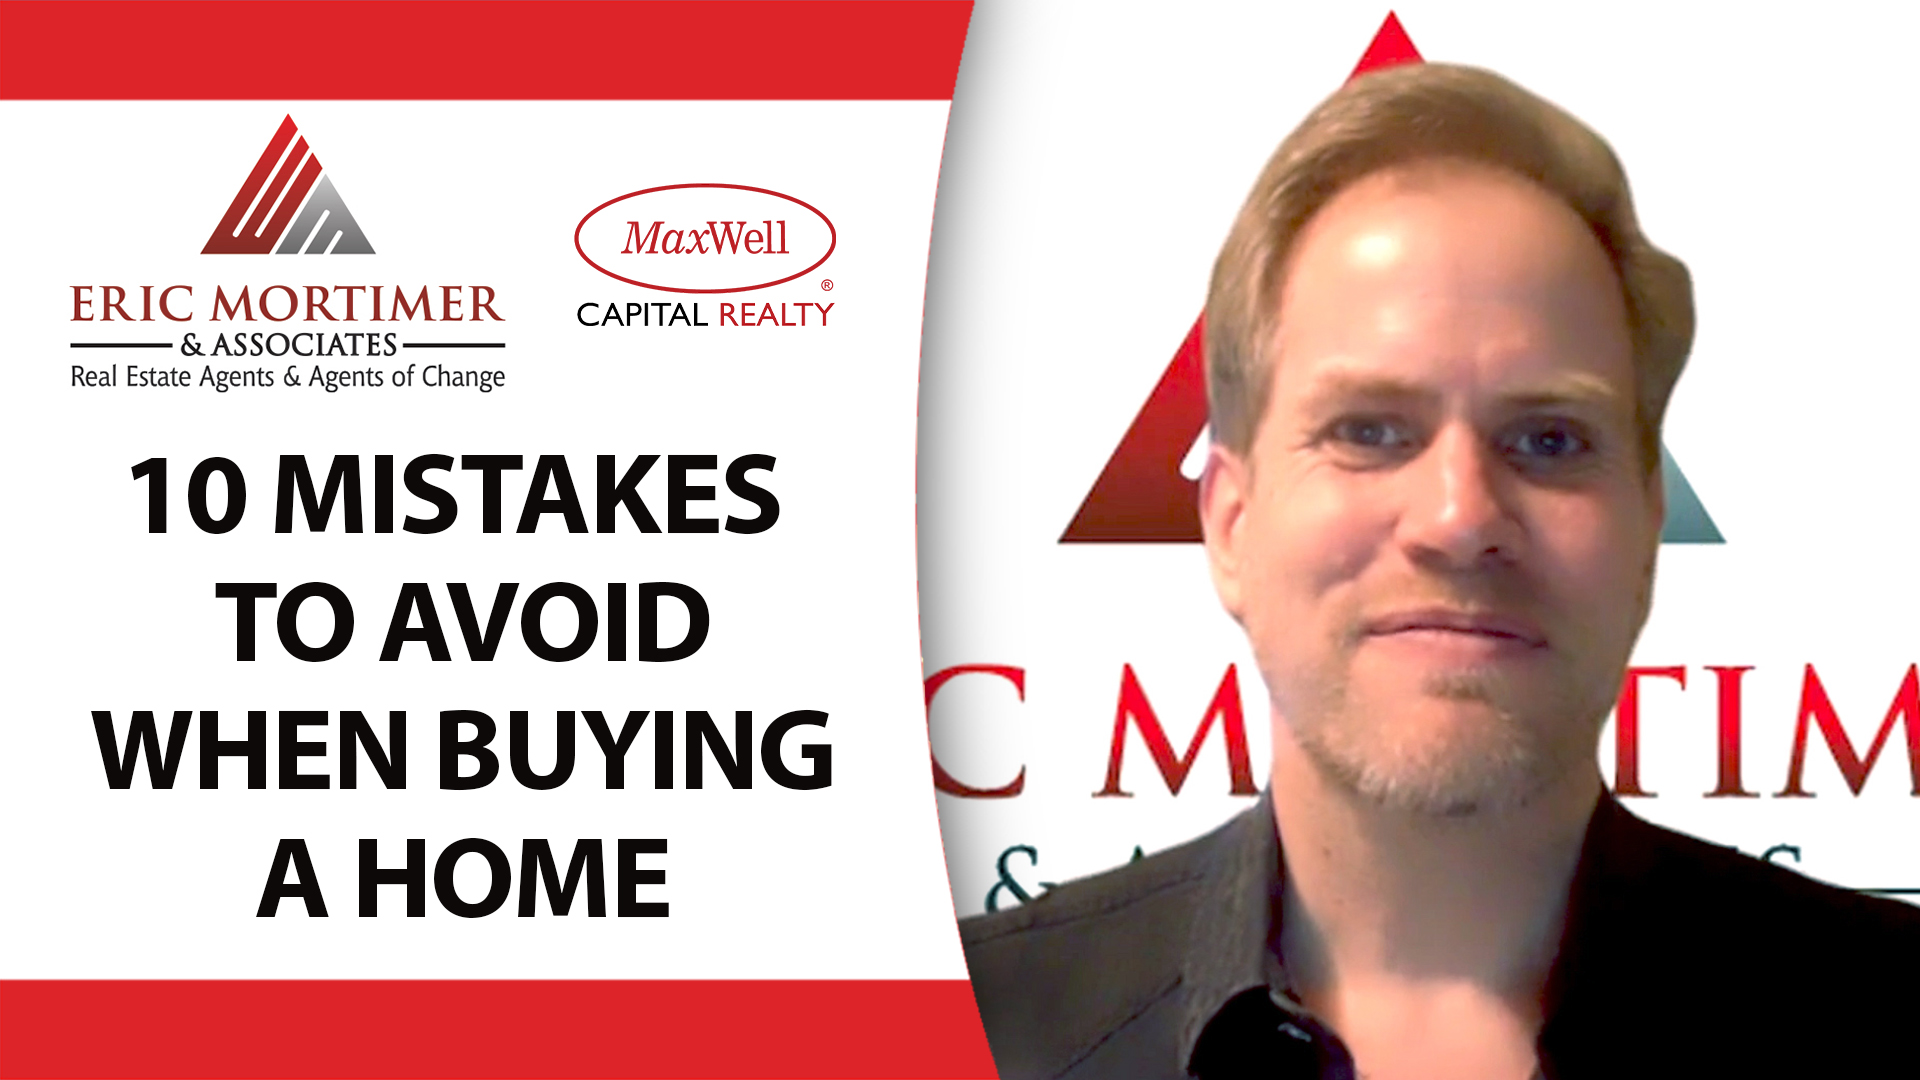 Buyers: In This Fast Market, Slow Down & Think